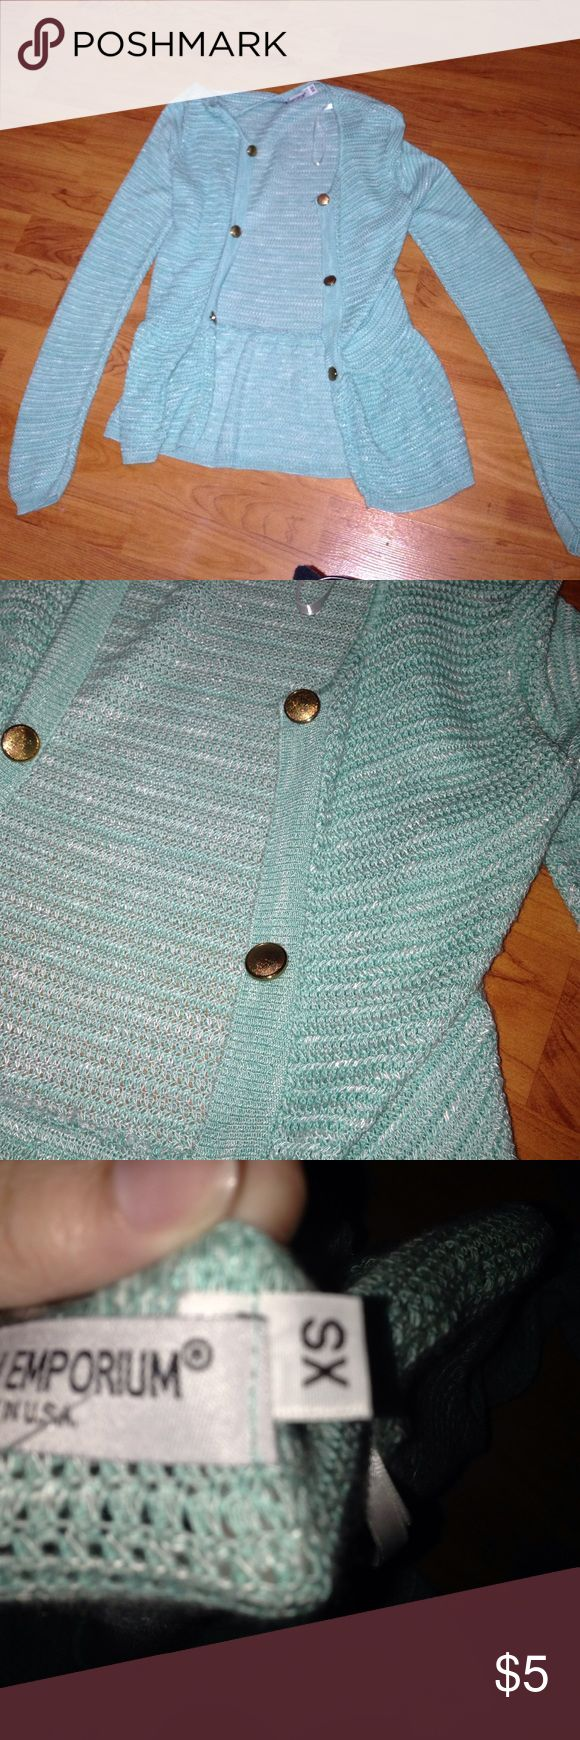 Turquoise cardigan Turquoise cardigan with golden buttons. Very fitting and only worn once Tops